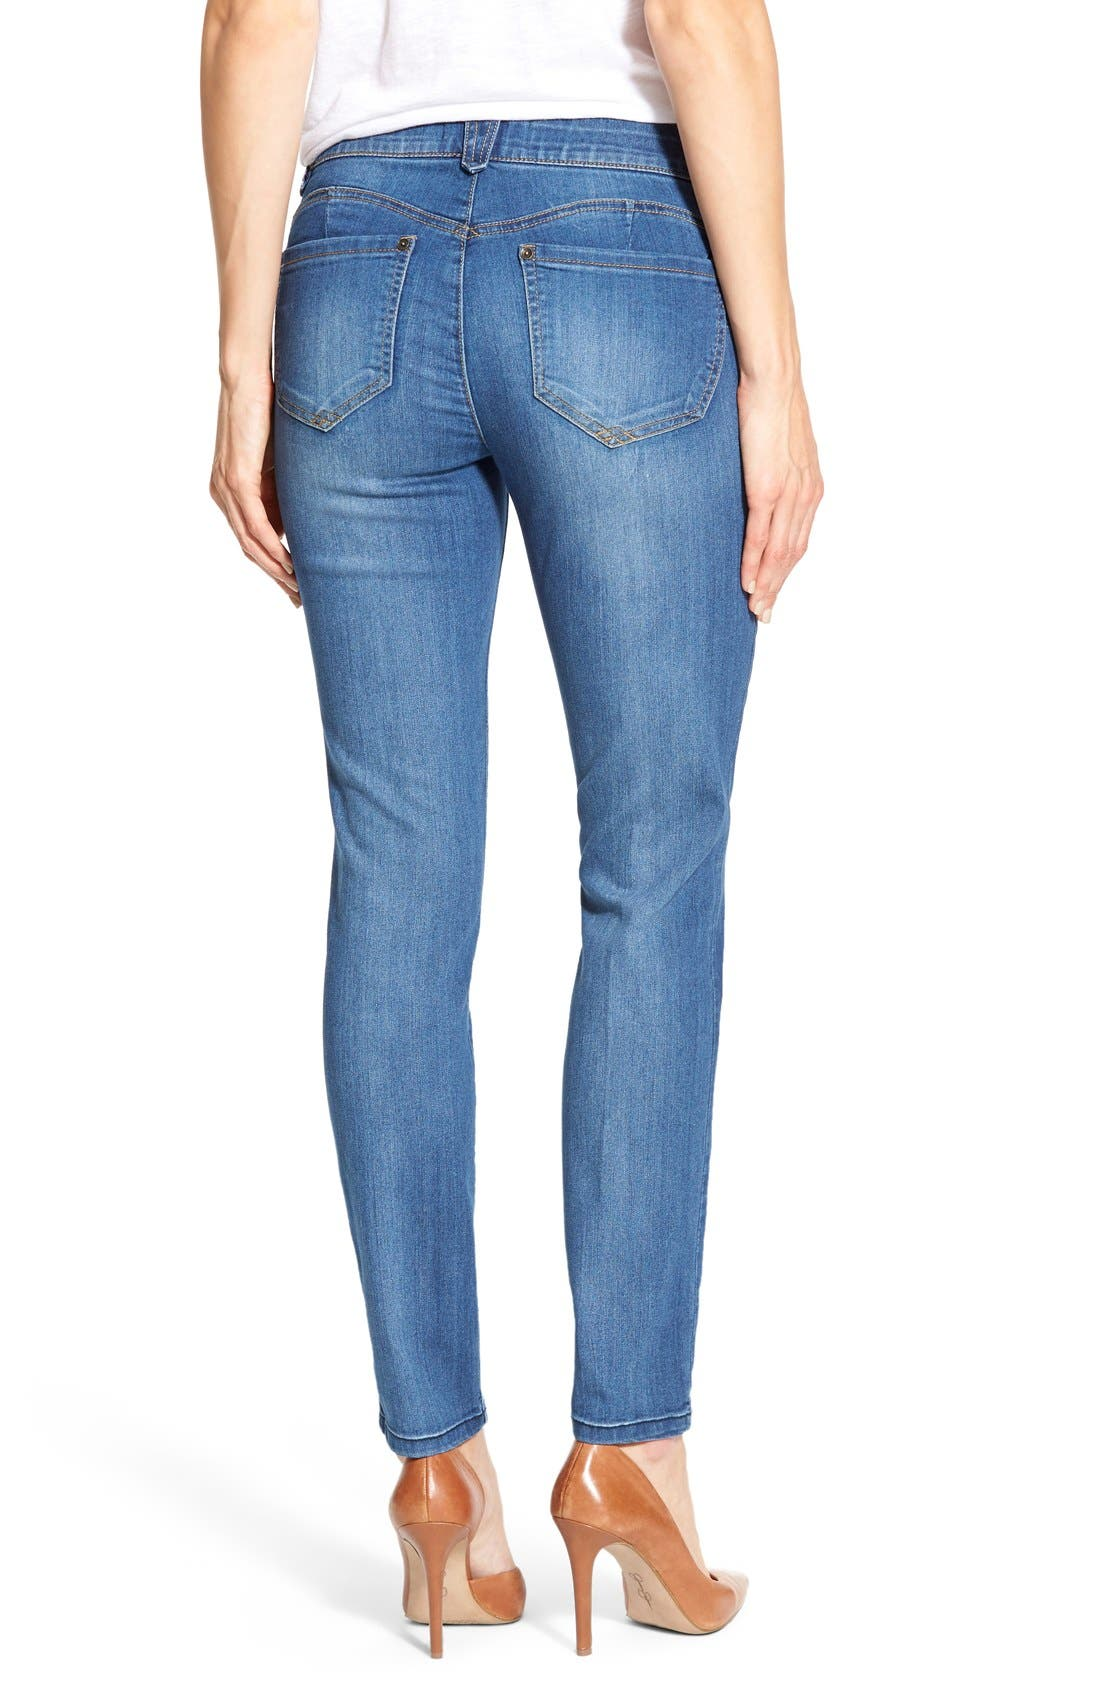 Alternate Image 2  - Wit & Wisdom 'Ab-solution' Booty Lift Stretch Skinny Jeans (Nordstrom Exclusive)